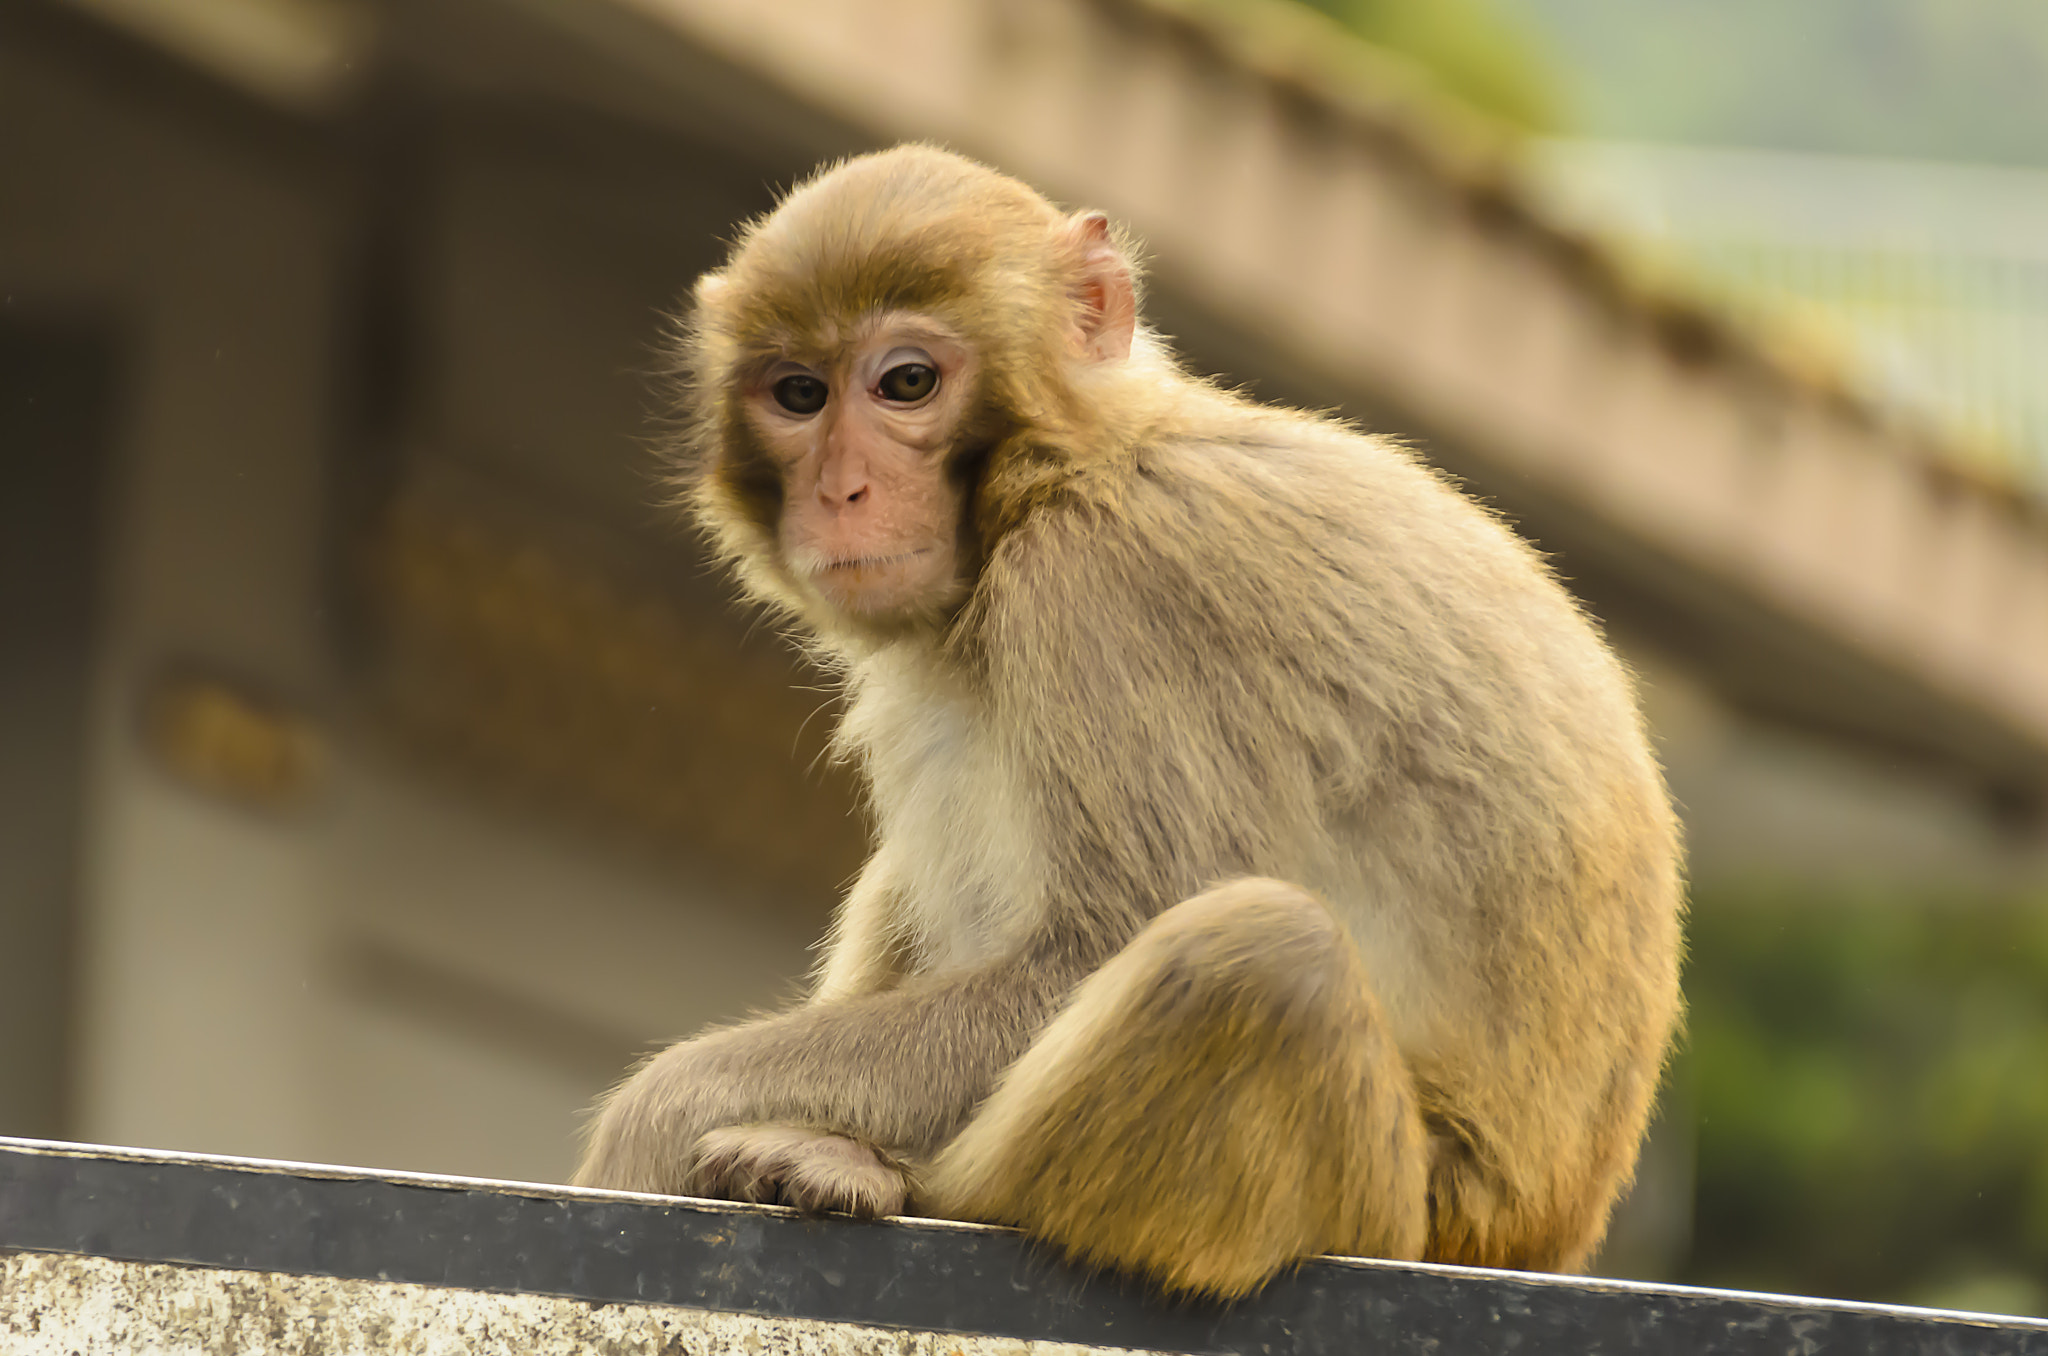 Photograph Hong Kong Macaque by Martijn Barendregt on 500px